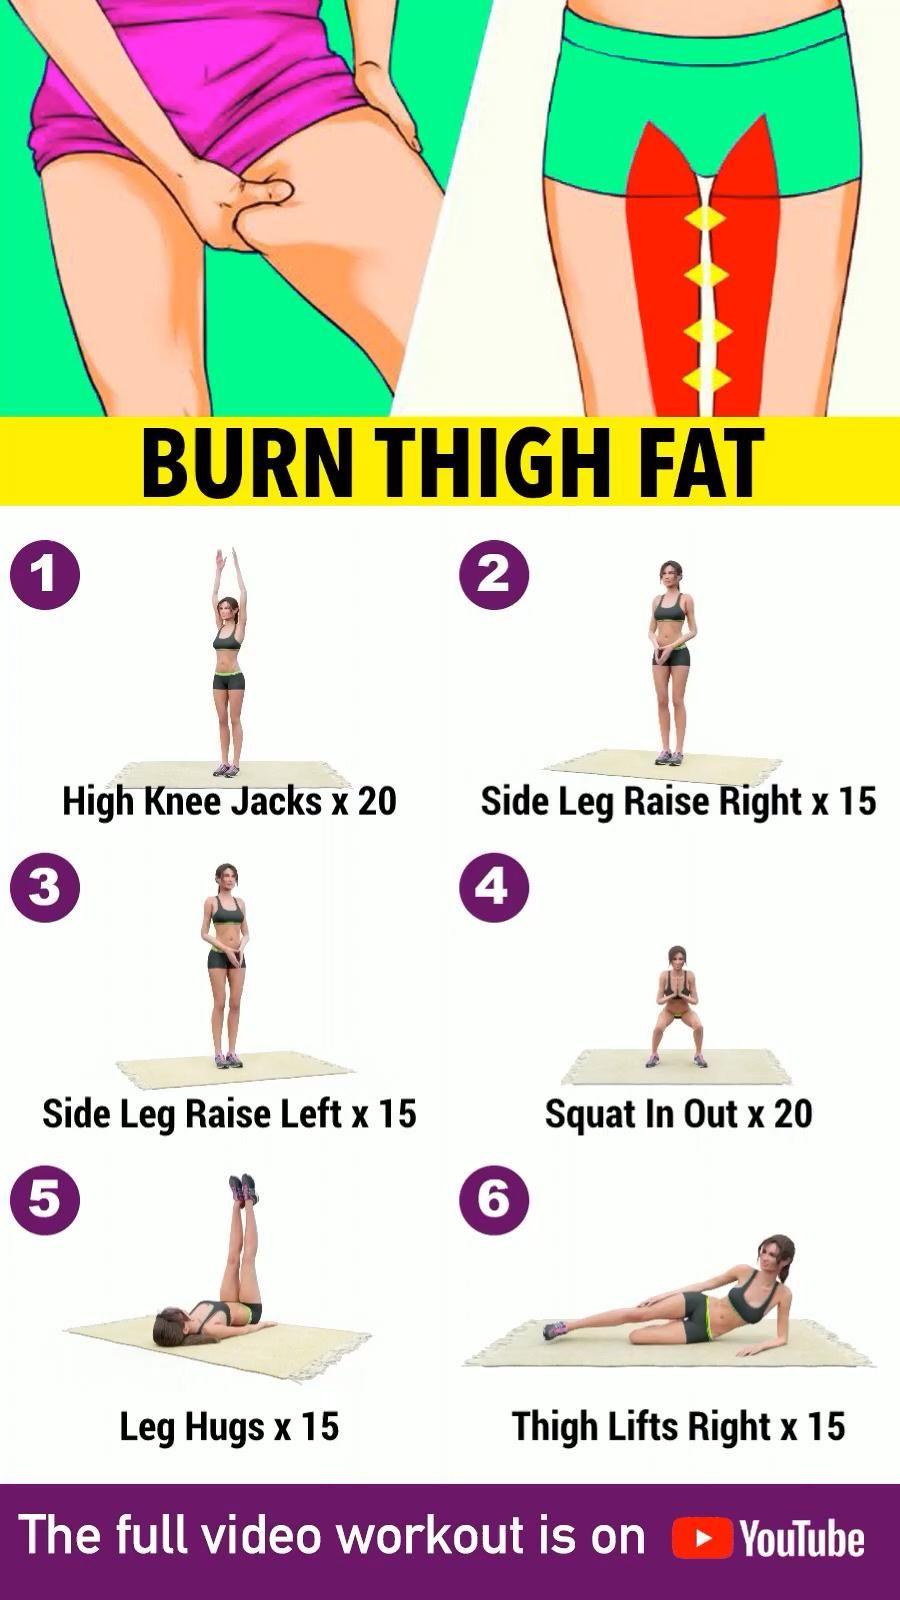 Best exercise to burn thigh fat fast